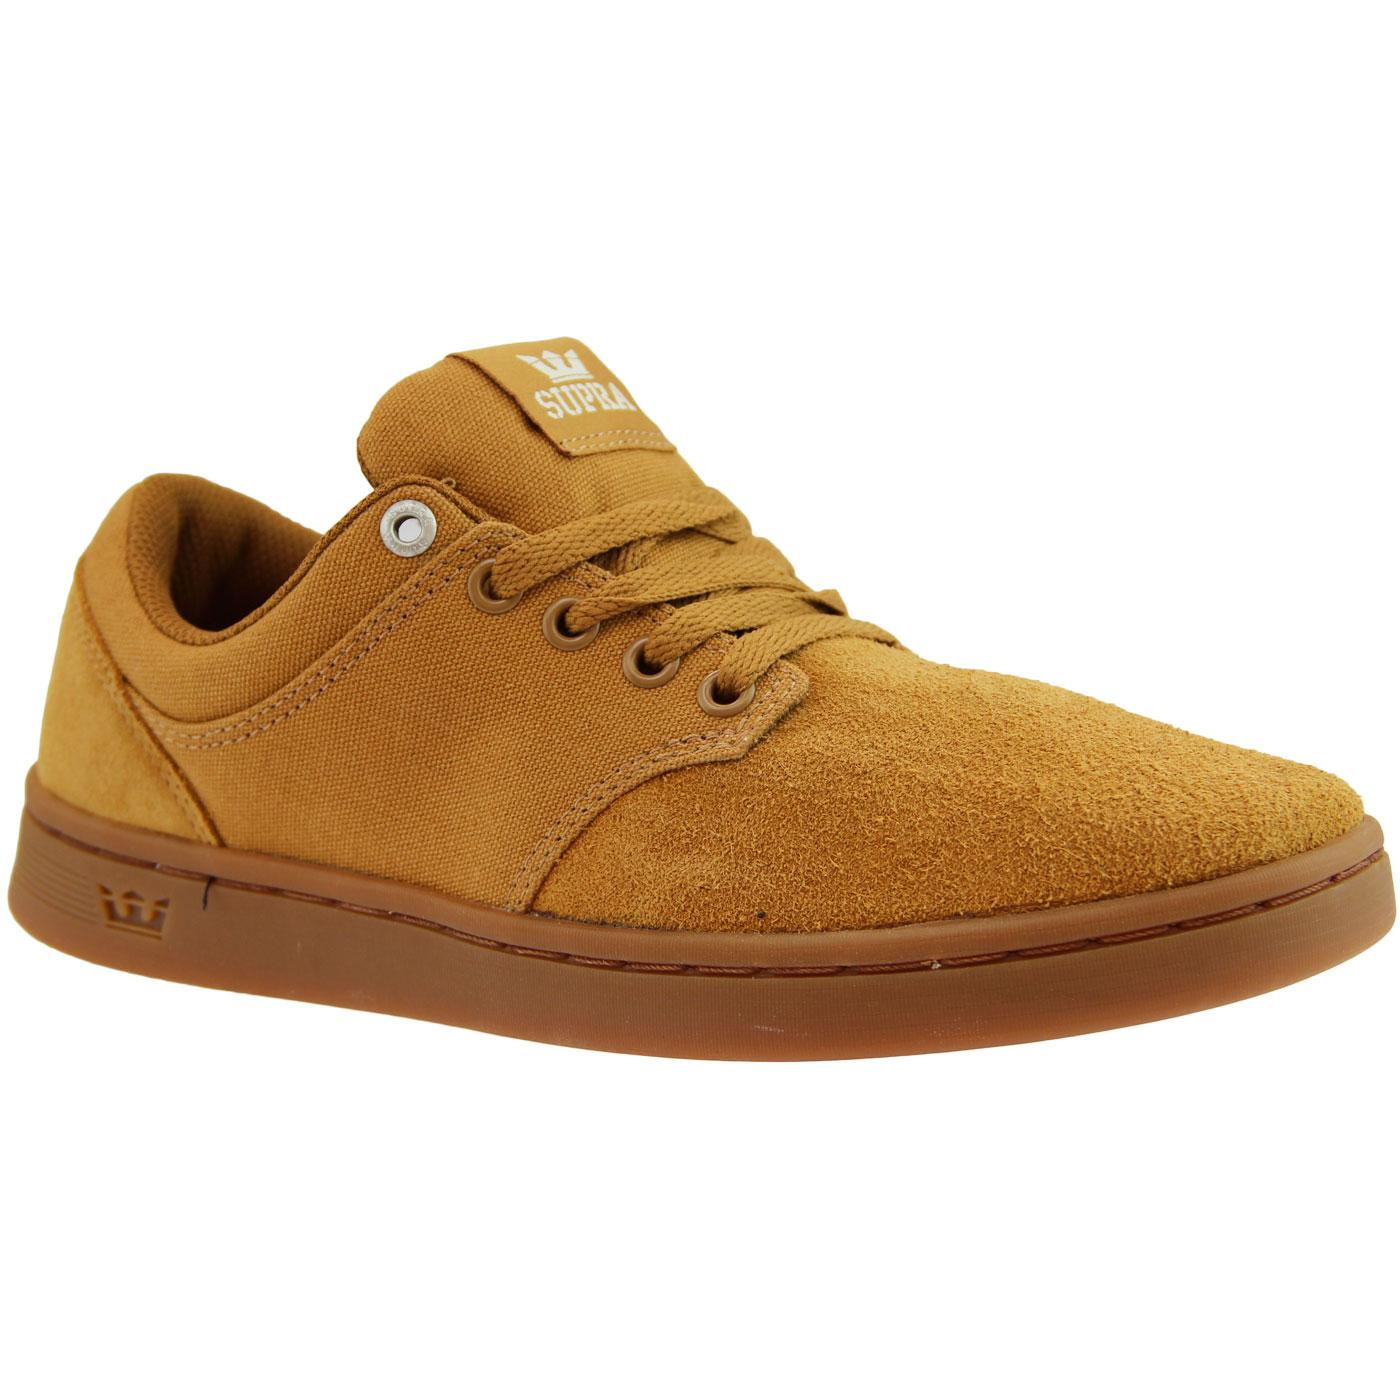 Chino Court SUPRA Retro Low Top Skate Trainers T/G